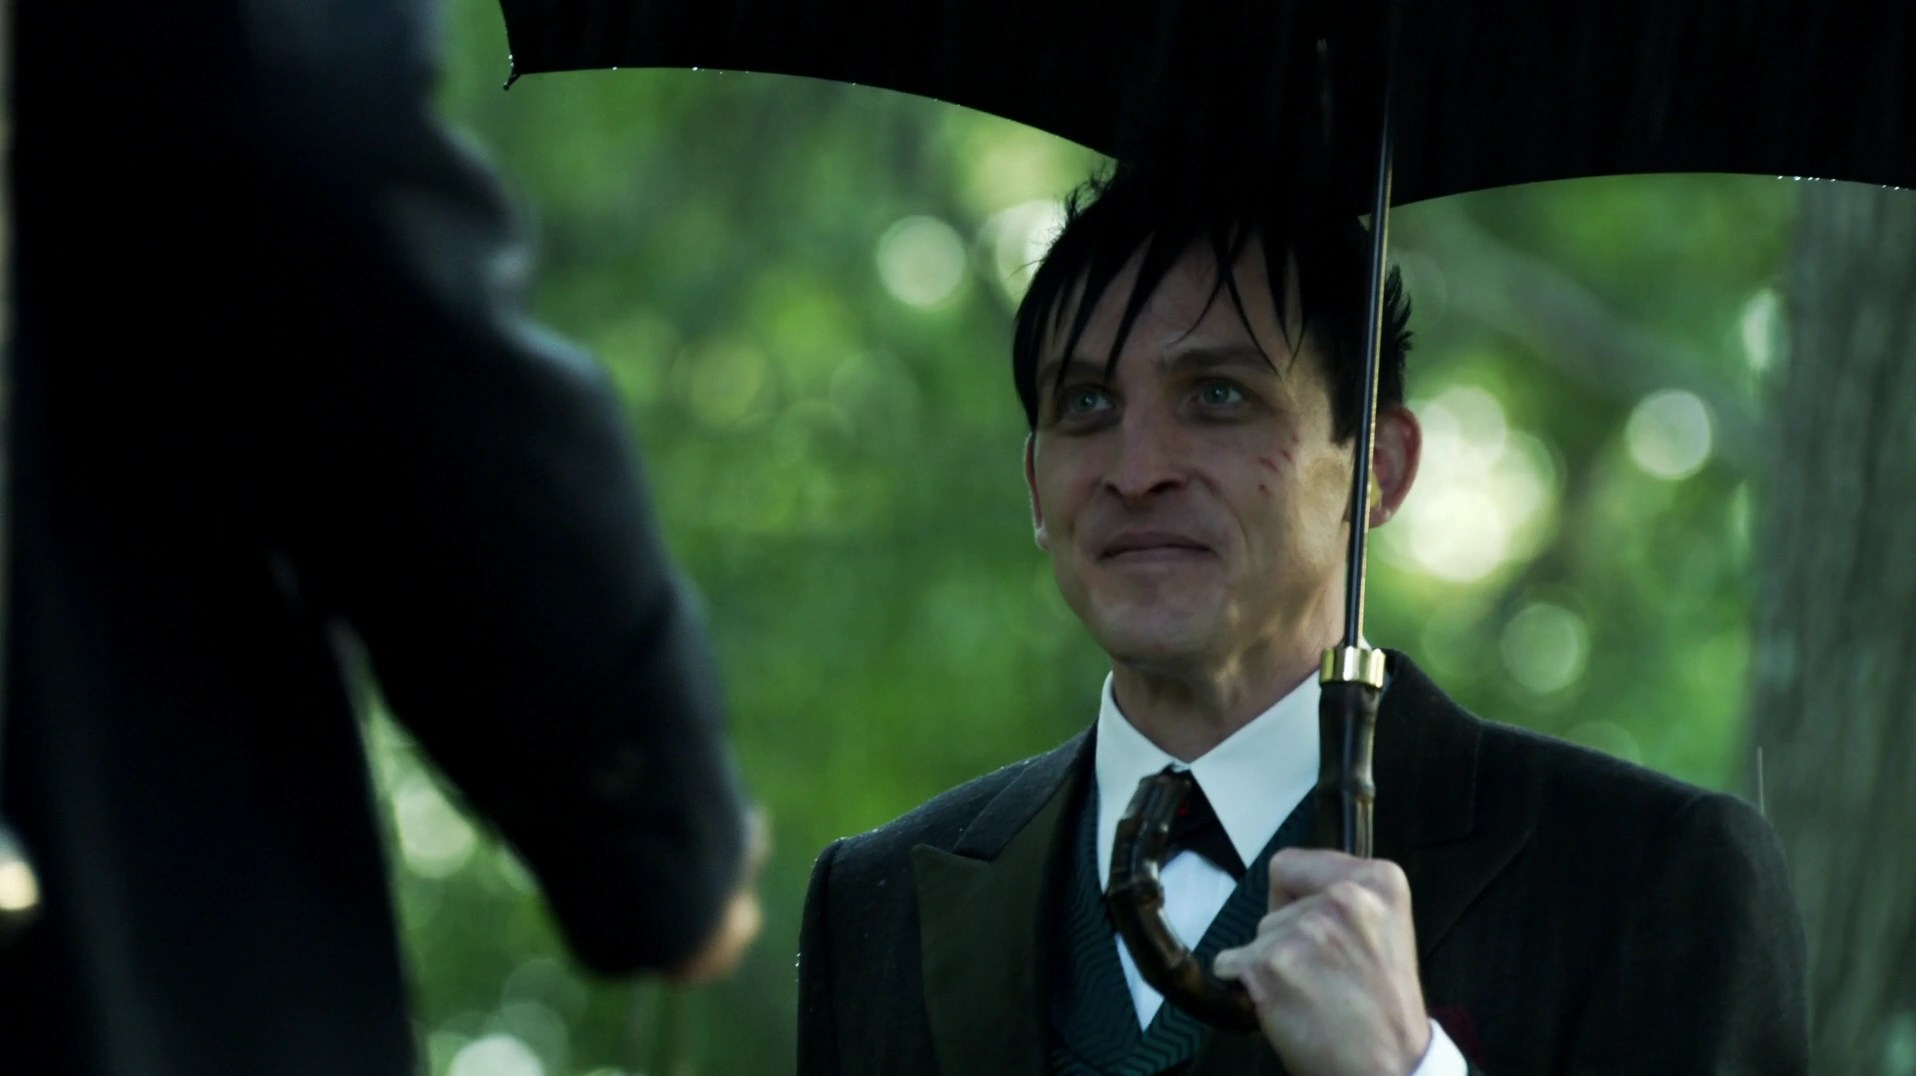 20+ Oswald Cobblepot Umbrella Pictures and Ideas on Meta Networks